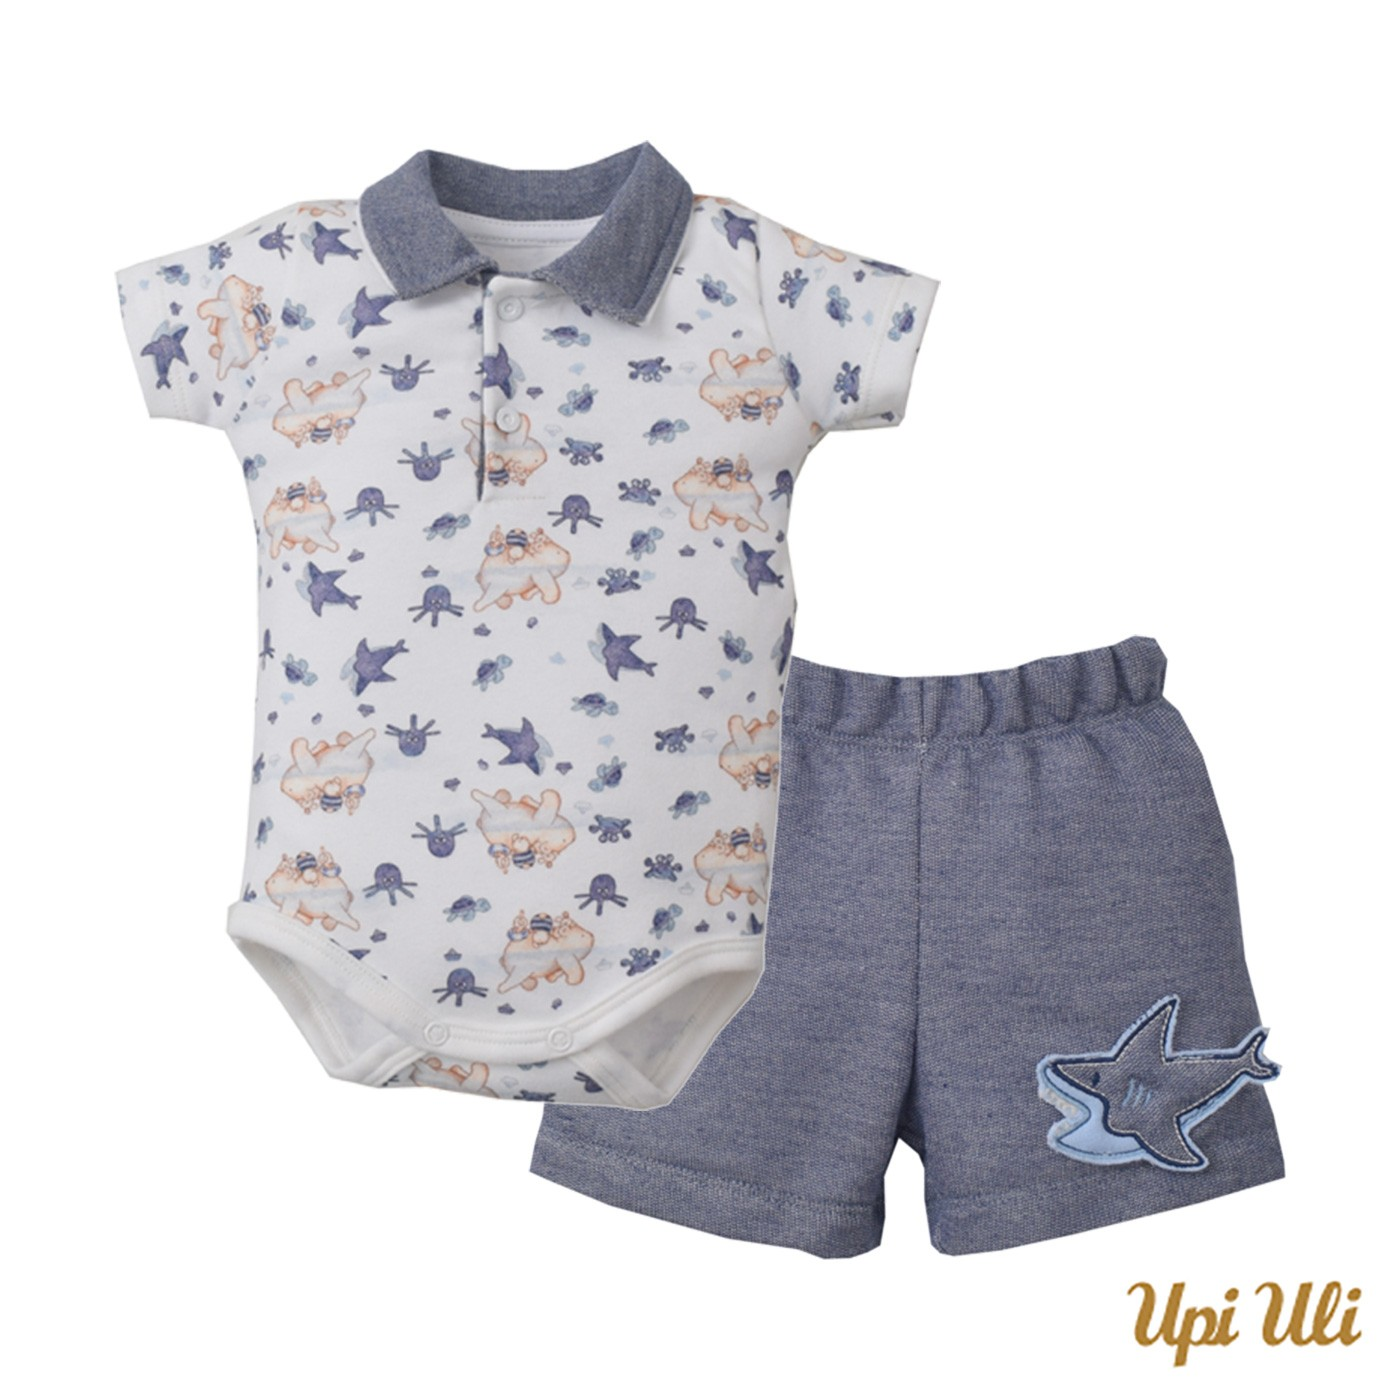 Conj. Body Polo C/ Shorts Suedine/Moletinho Denim Fundo Do Mar (4)